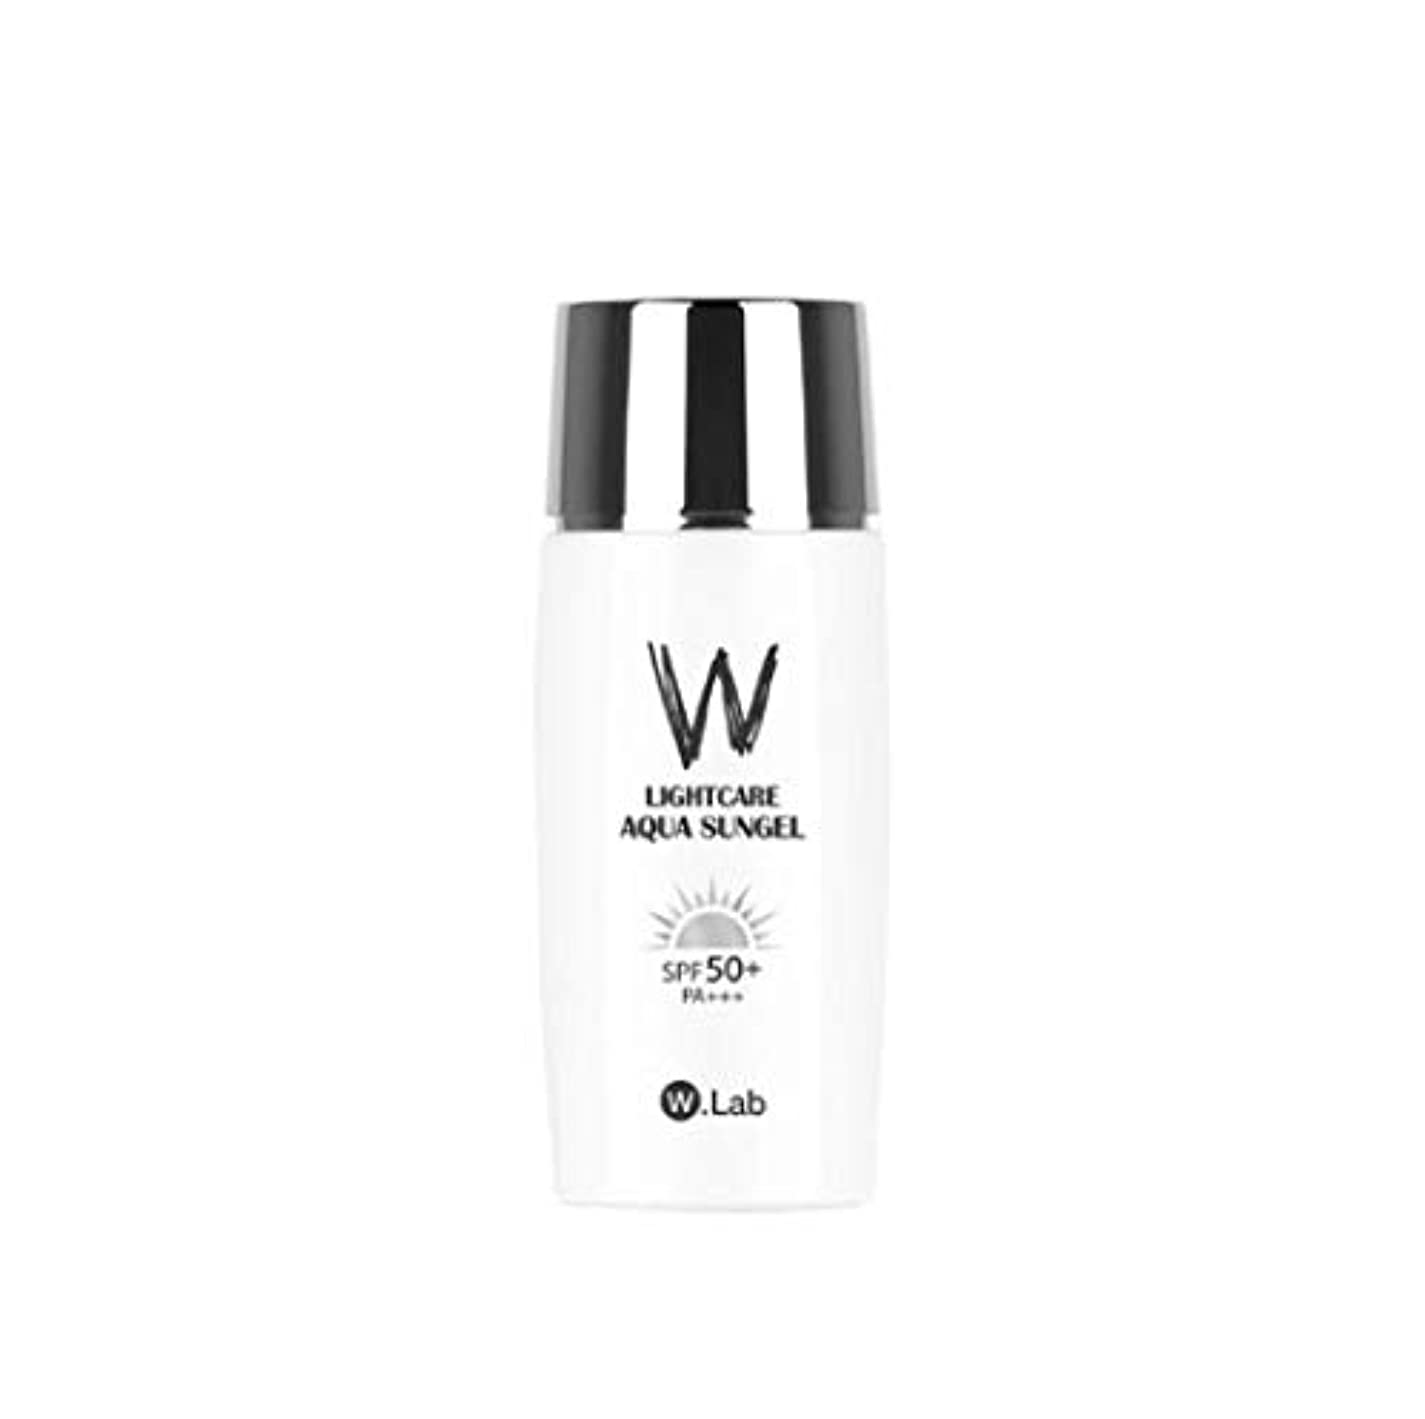 排出浪費エンジンW.Lab Light Care Aqua Sun Gel Sunscreen SPF PA+++ 50+ Daily Care Solution SPF 50 PA+++ Face Body Water Resistant UV Protection Sun Screen Cream Hydrated Isolation Cream, 50ML